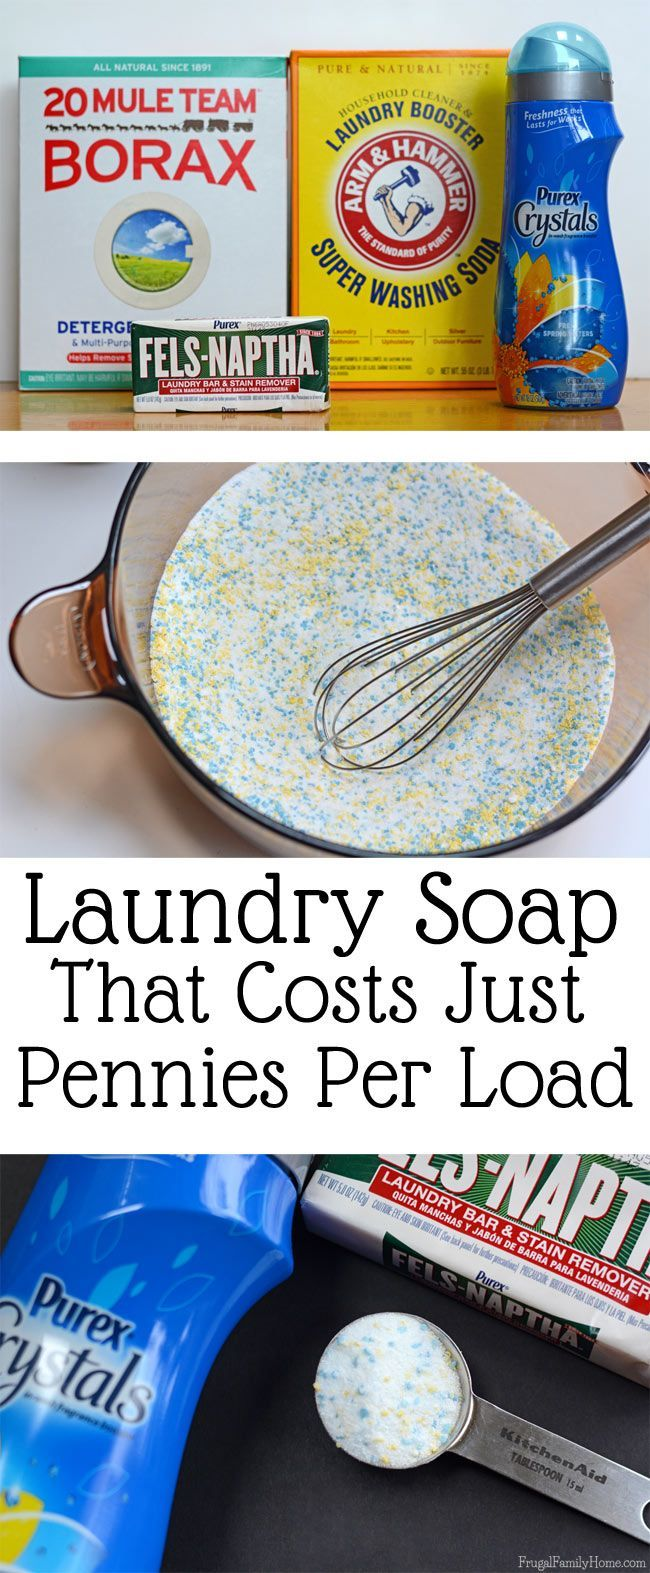 Making your own laundry detergent can really save you money. This diy laundry soap cost only pennies per load and cleans really well. I've been using it for years now and it worked great in my top loading washer and works just as good in my front loading washer too.